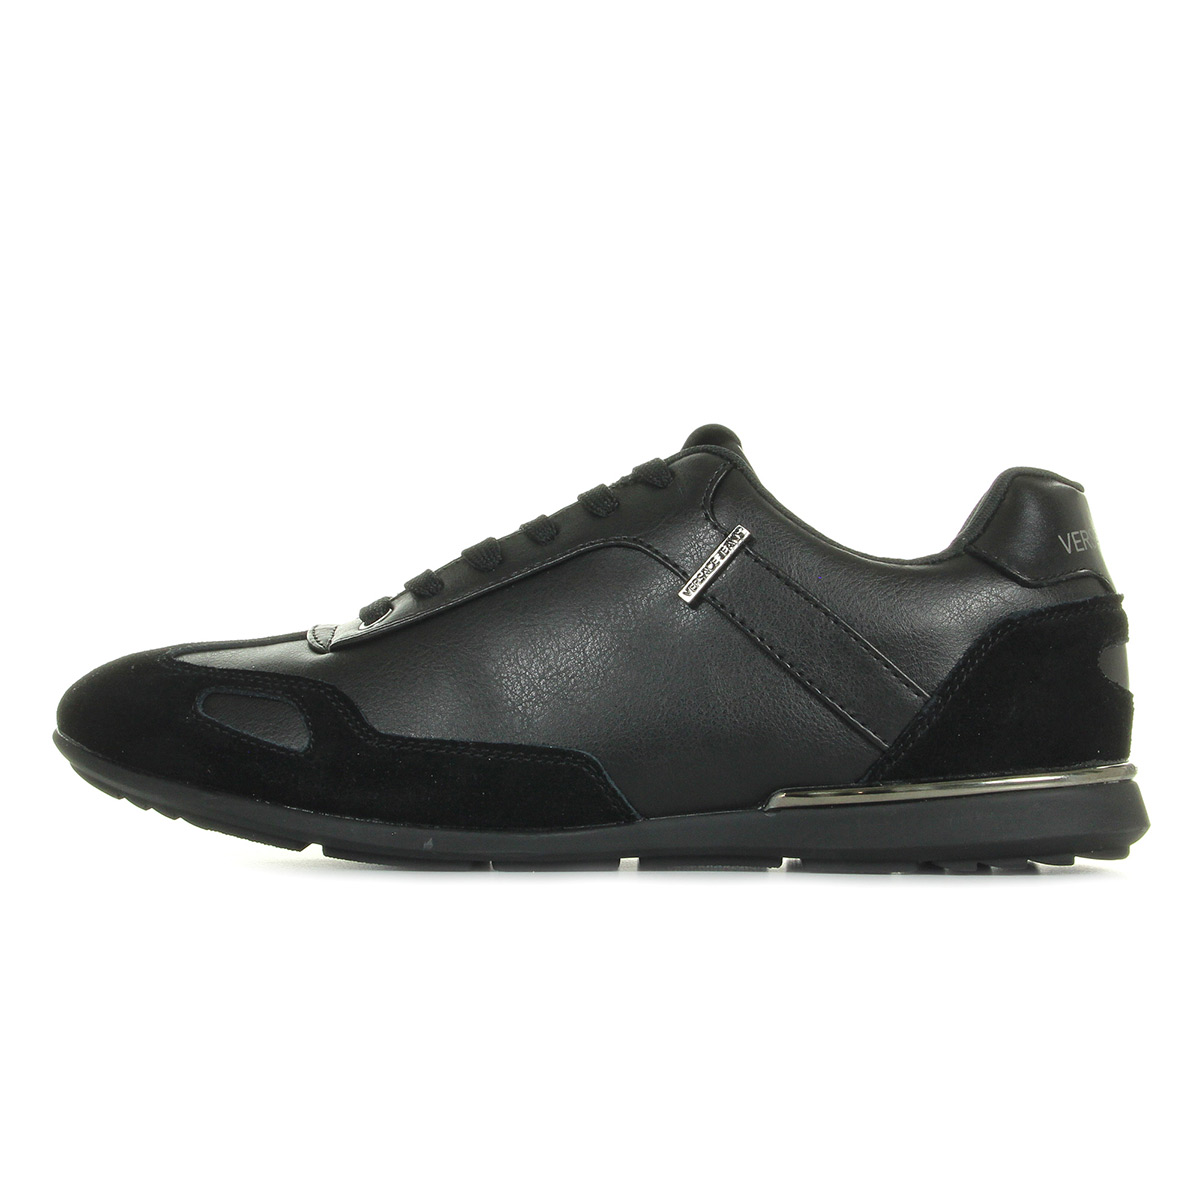 Versace Jeans Linea Tommy Dis F2 899 Coated Suede E0YQBSF2899, Baskets mode homme